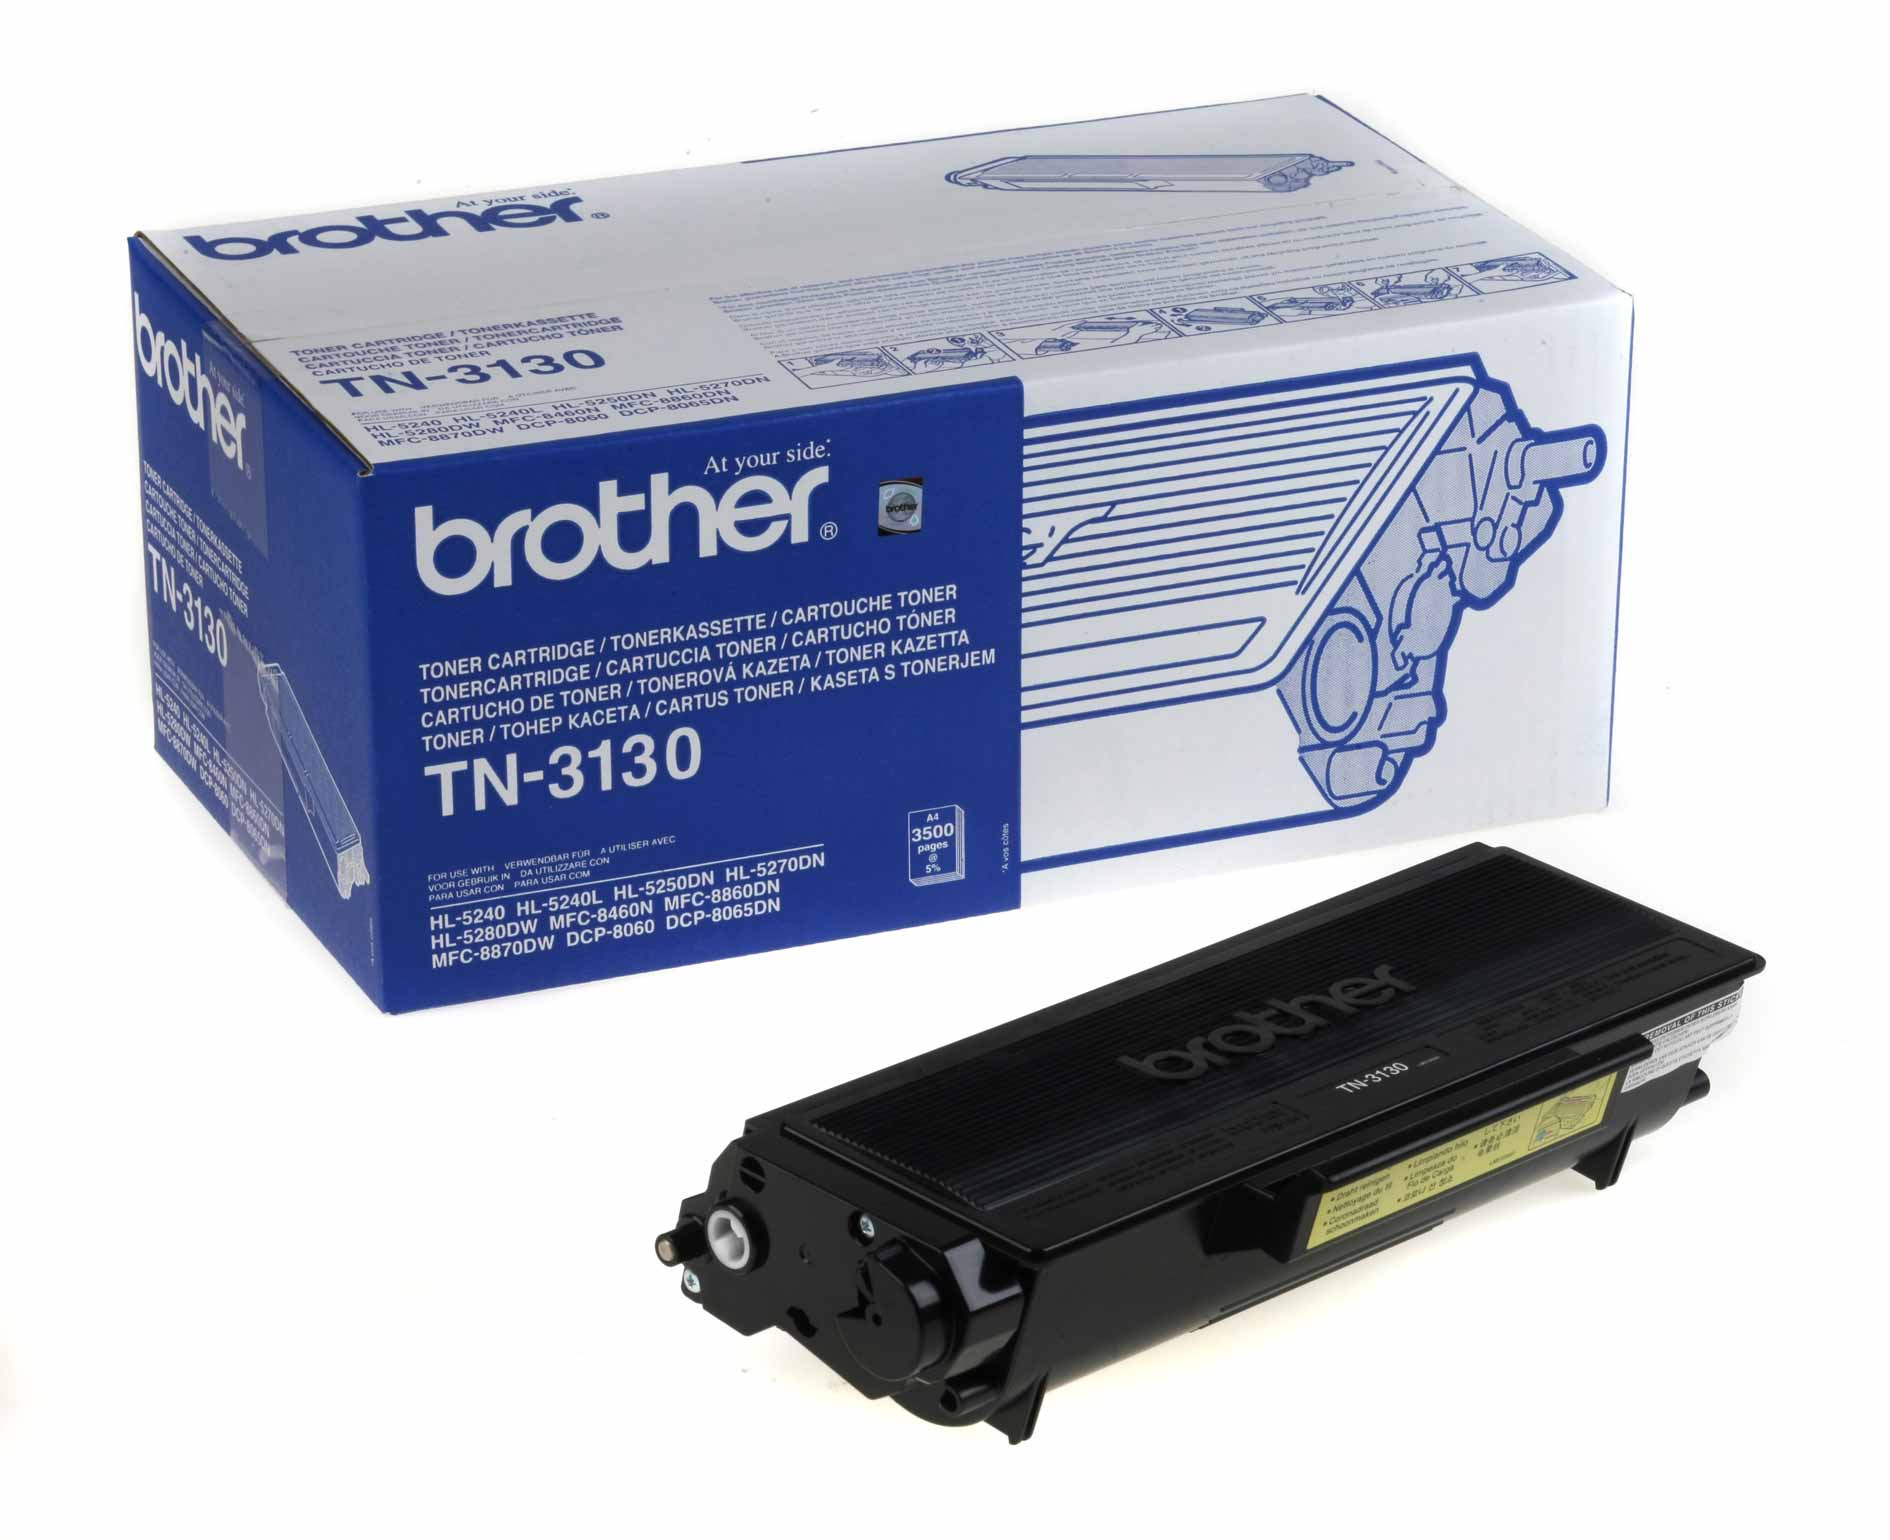 Brother tn-3130 toner originale nero, durata 3.500 pagine